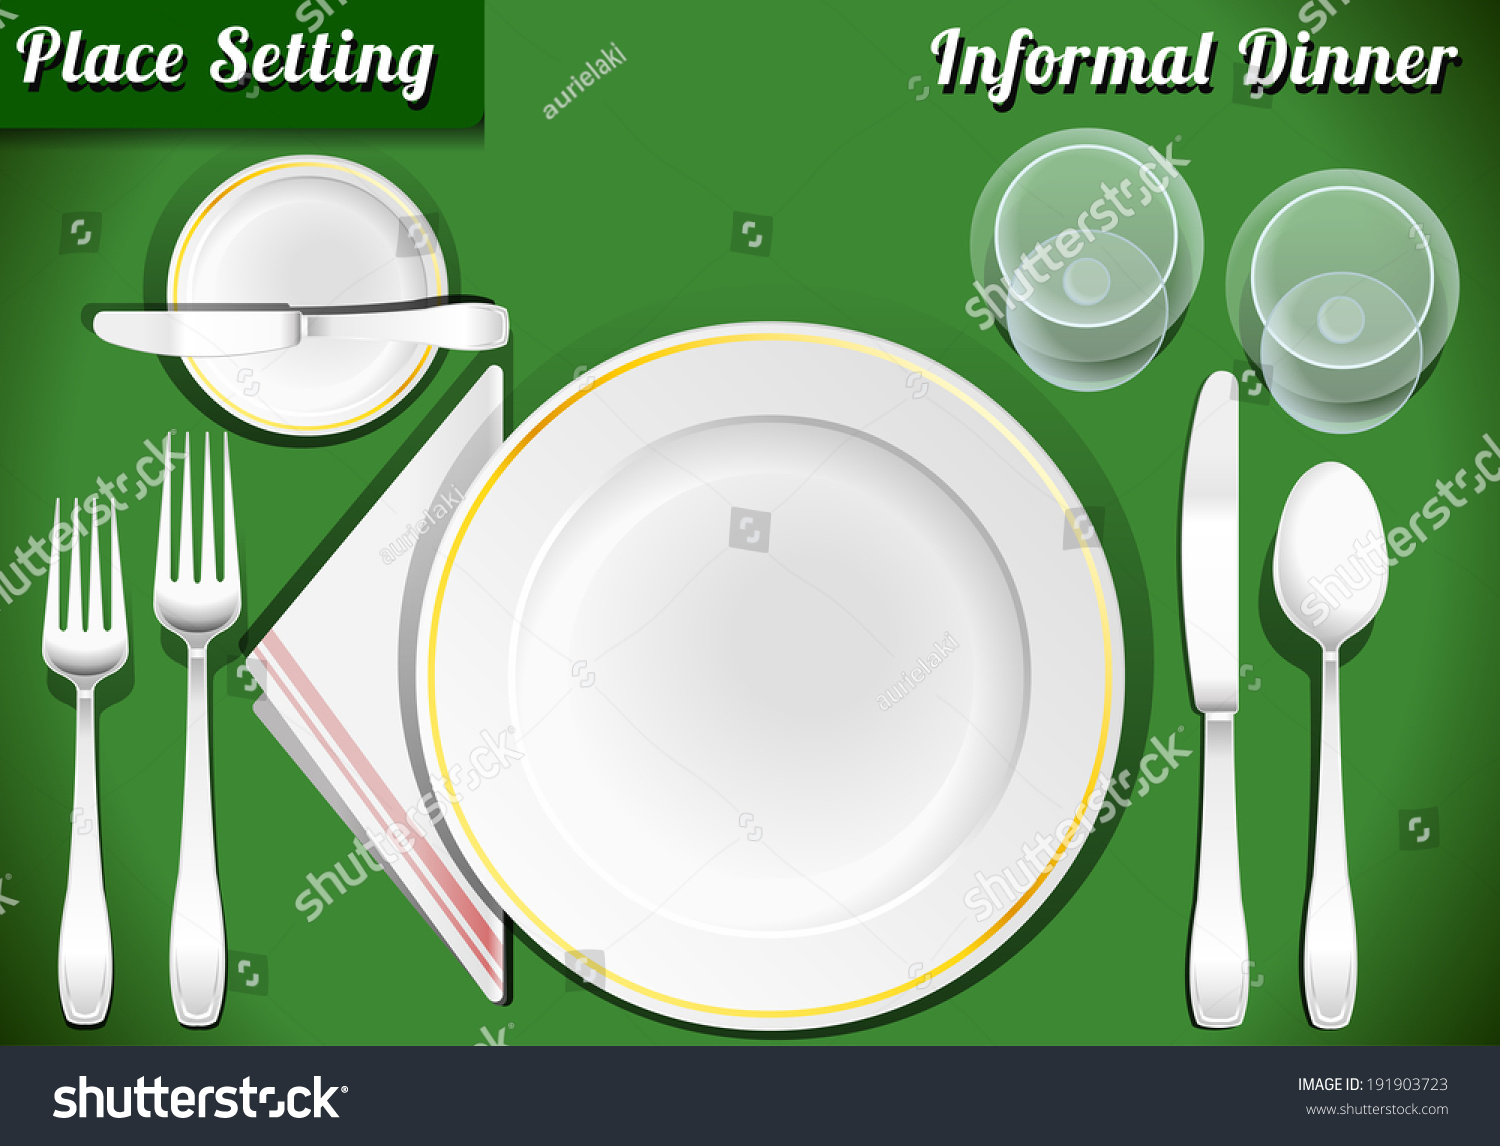 Setting Place Formal Placemat Place Setting Stock